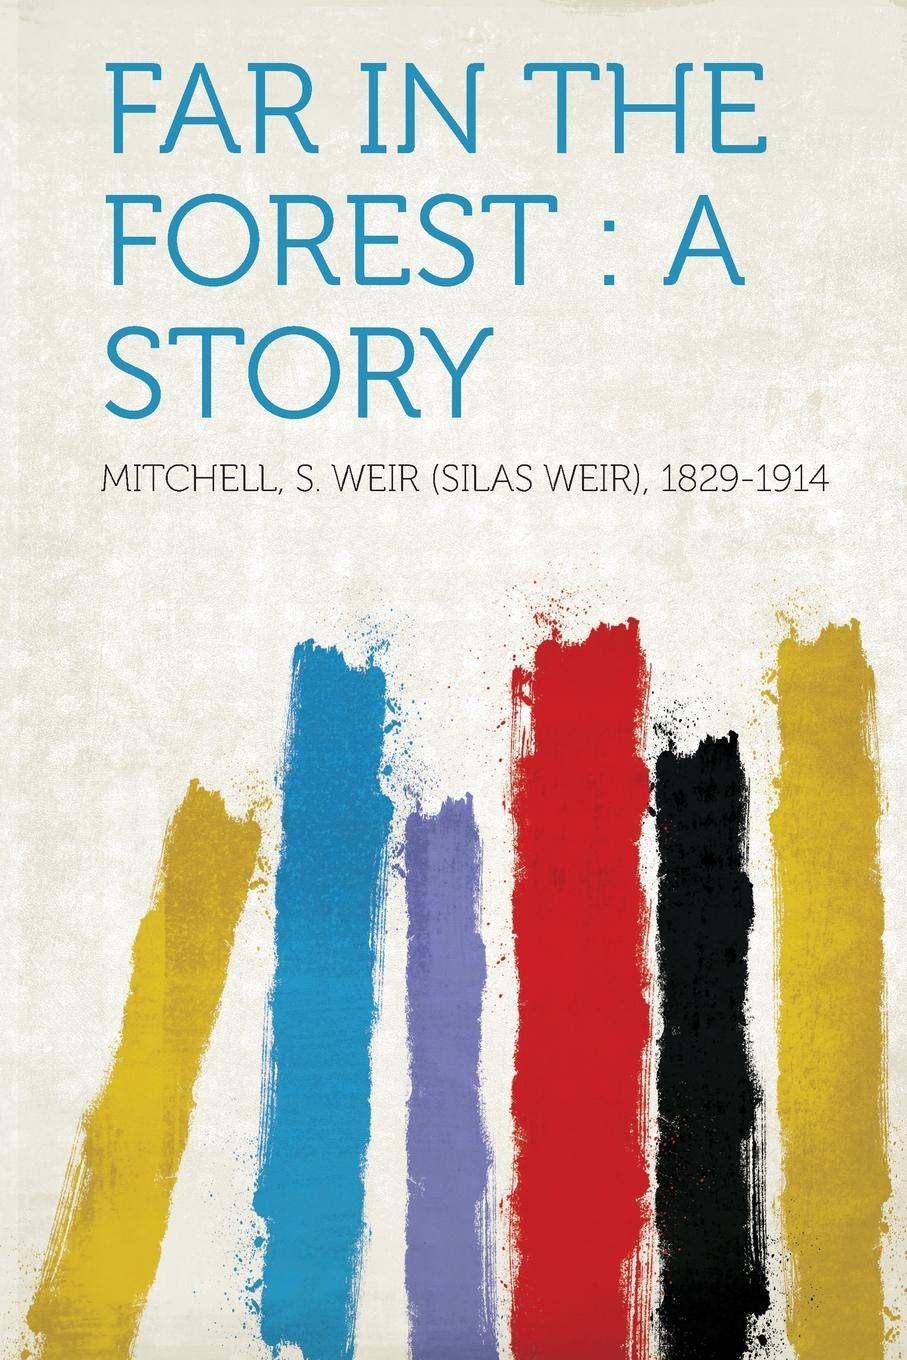 Mitchell S. Weir (Silas Weir 1829-1914 Far in the Forest. a Story supertramp the story so far